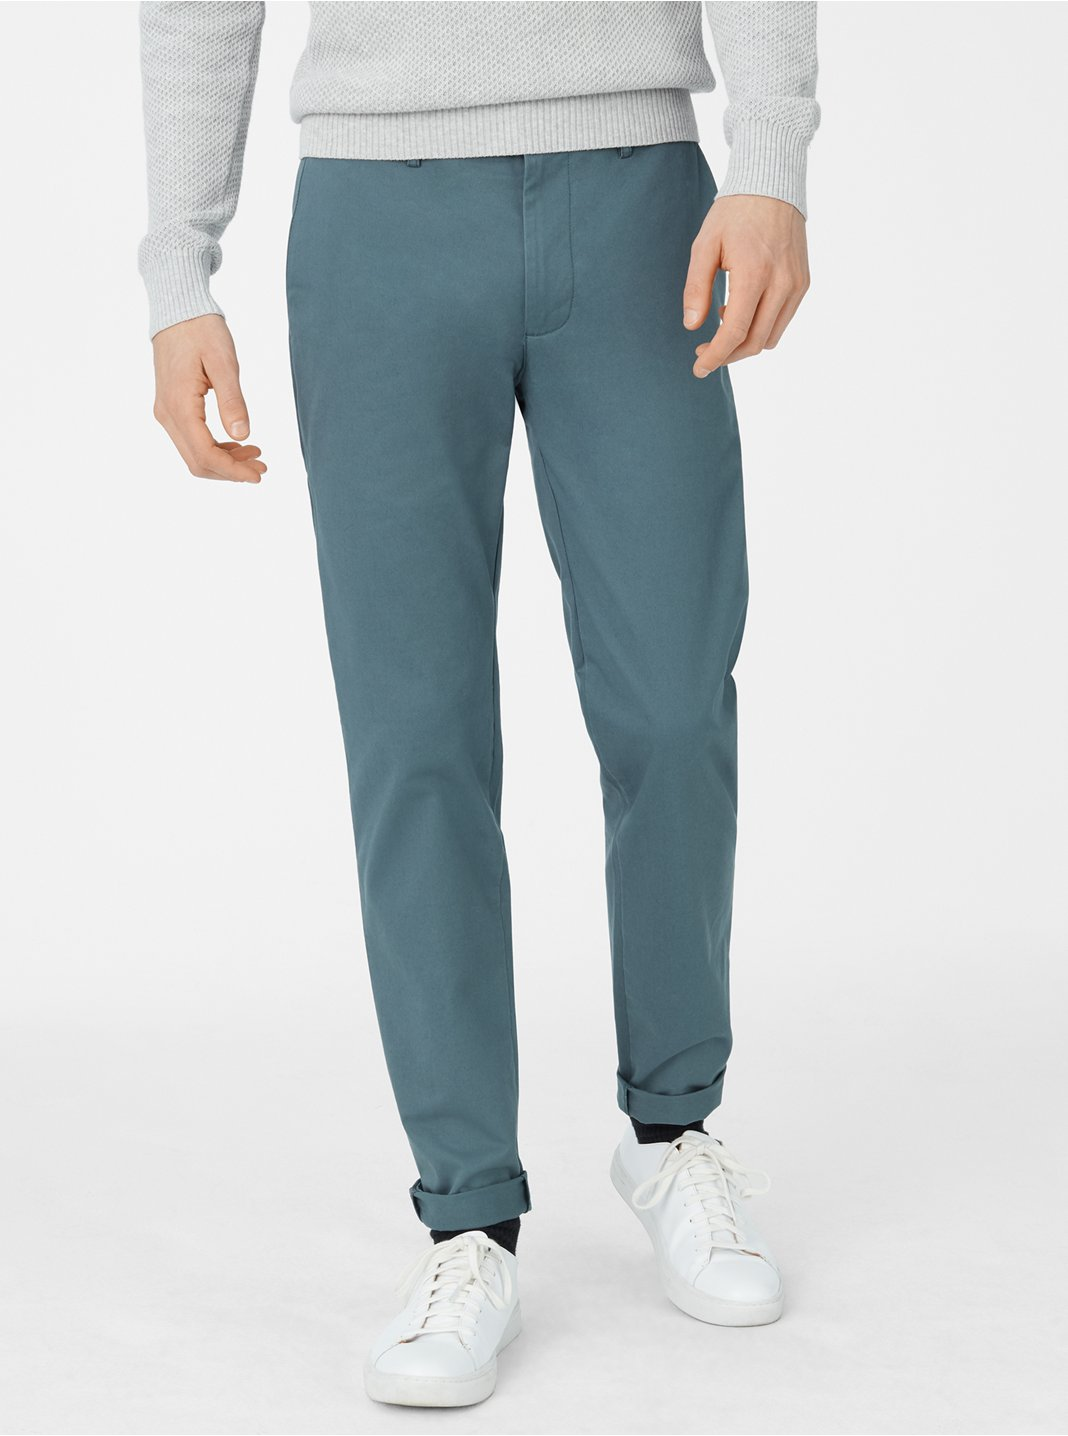 c340c09d Mens Pants | Club Monaco